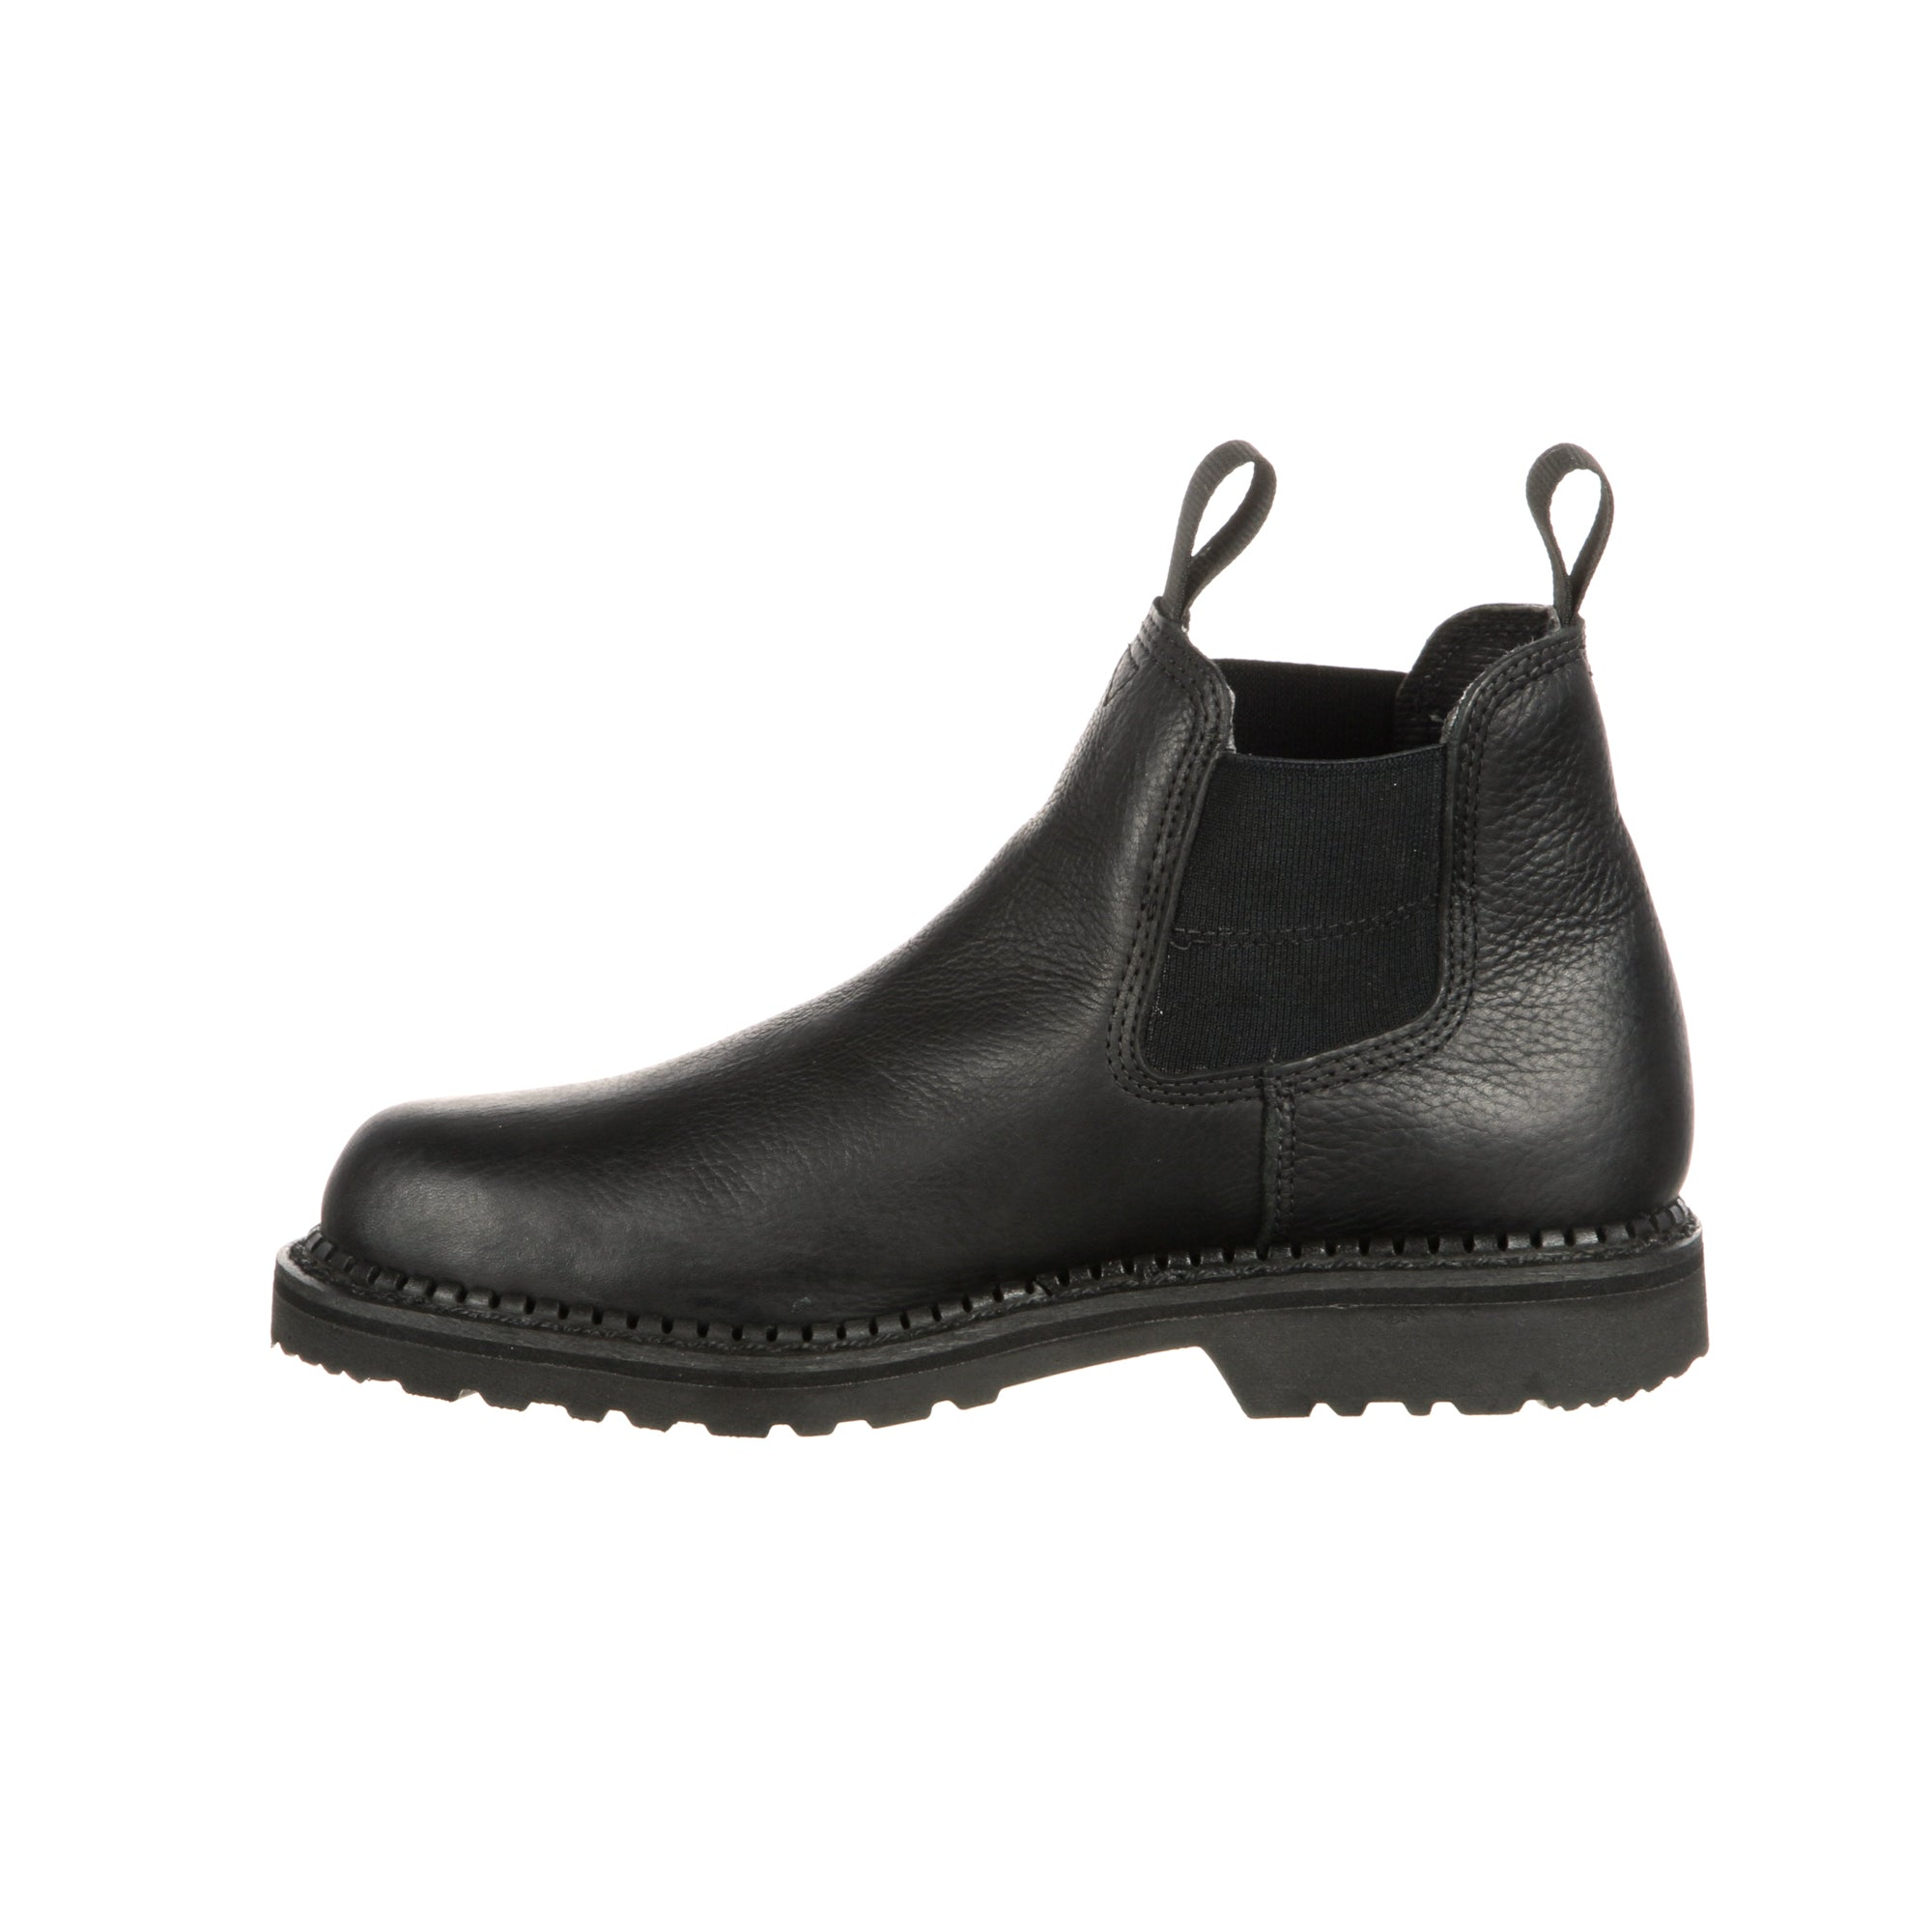 a44ab26ad1d Georgia Giant Mens Black Leather High Romeo Waterproof Work Boots ...